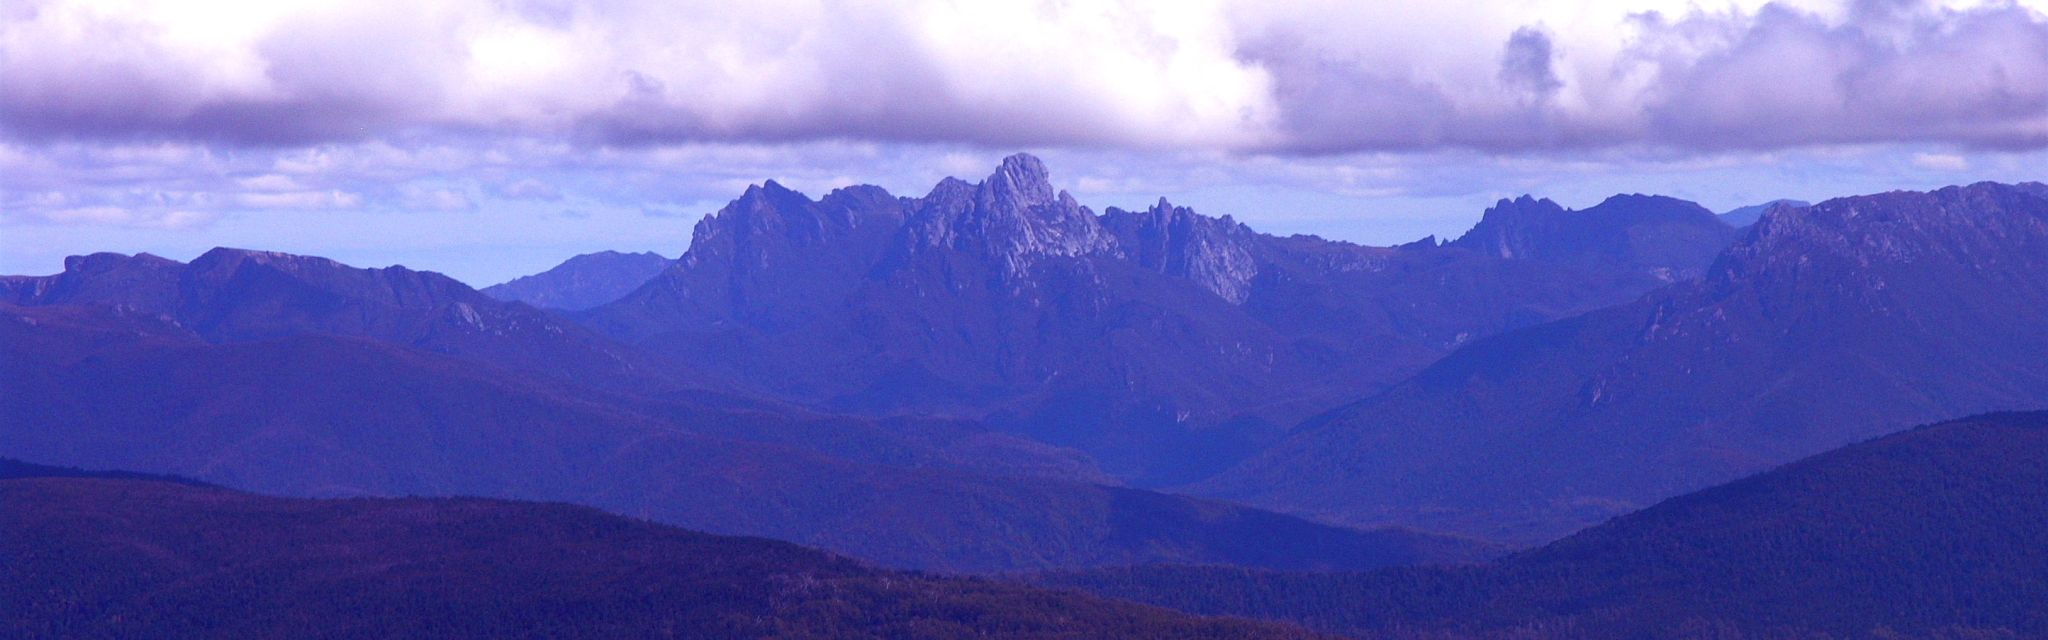 Federation Peak and South West Wilderness, image from Nature Bound Australia Tasmania National Parks Tour